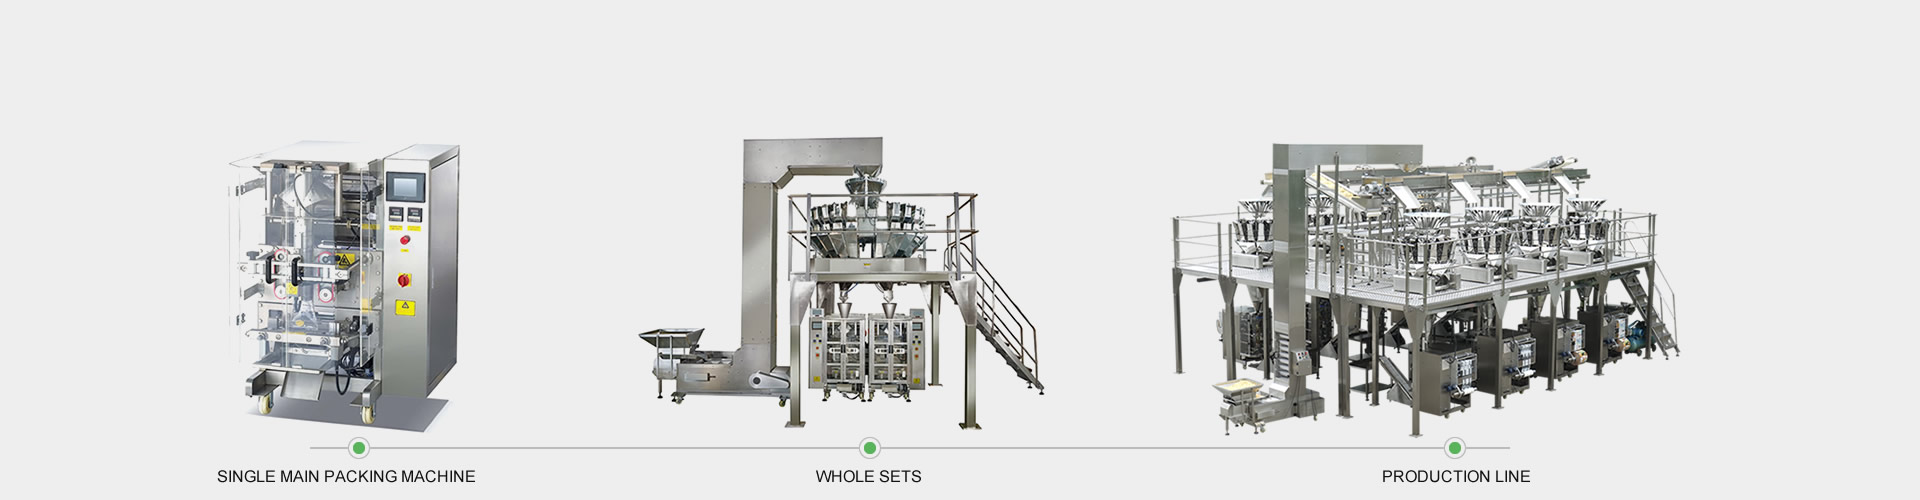 Weigher VFFS Packing Machine-BAOPACK